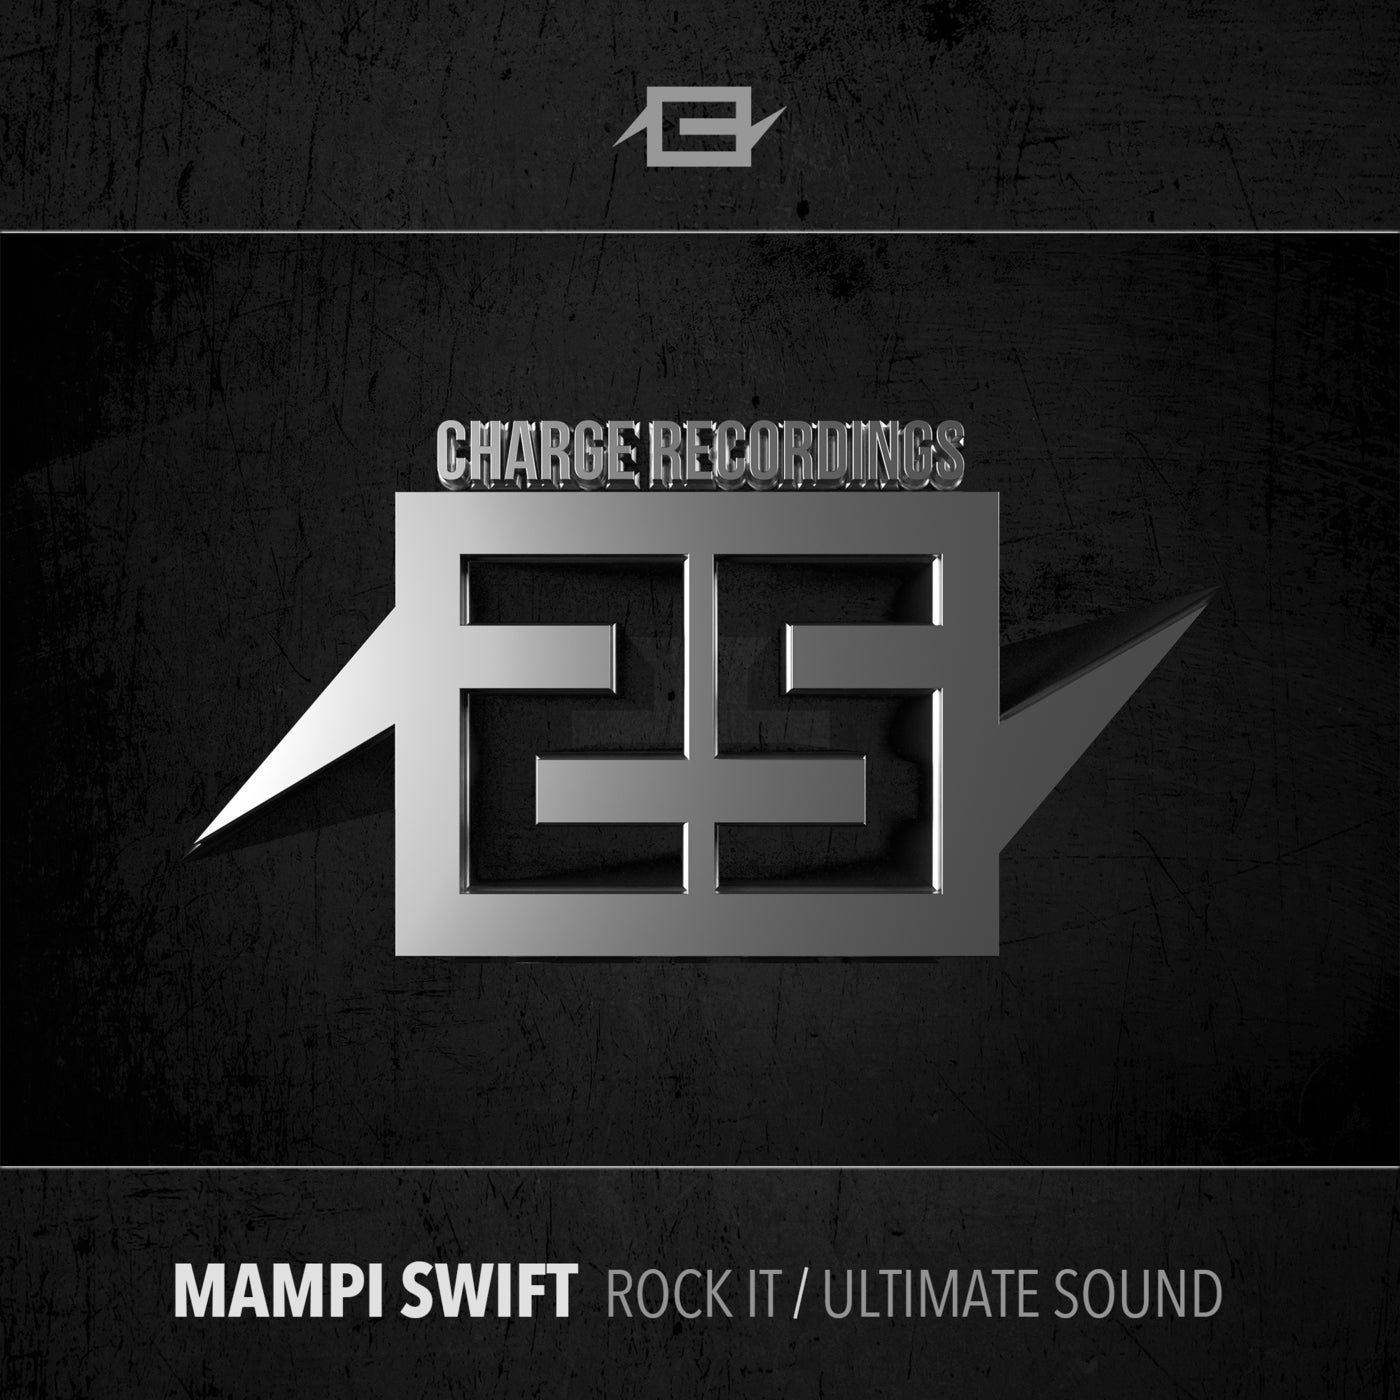 Mampi Swift - 25 years of Charge Rock It / Ultimate Sound (2021)